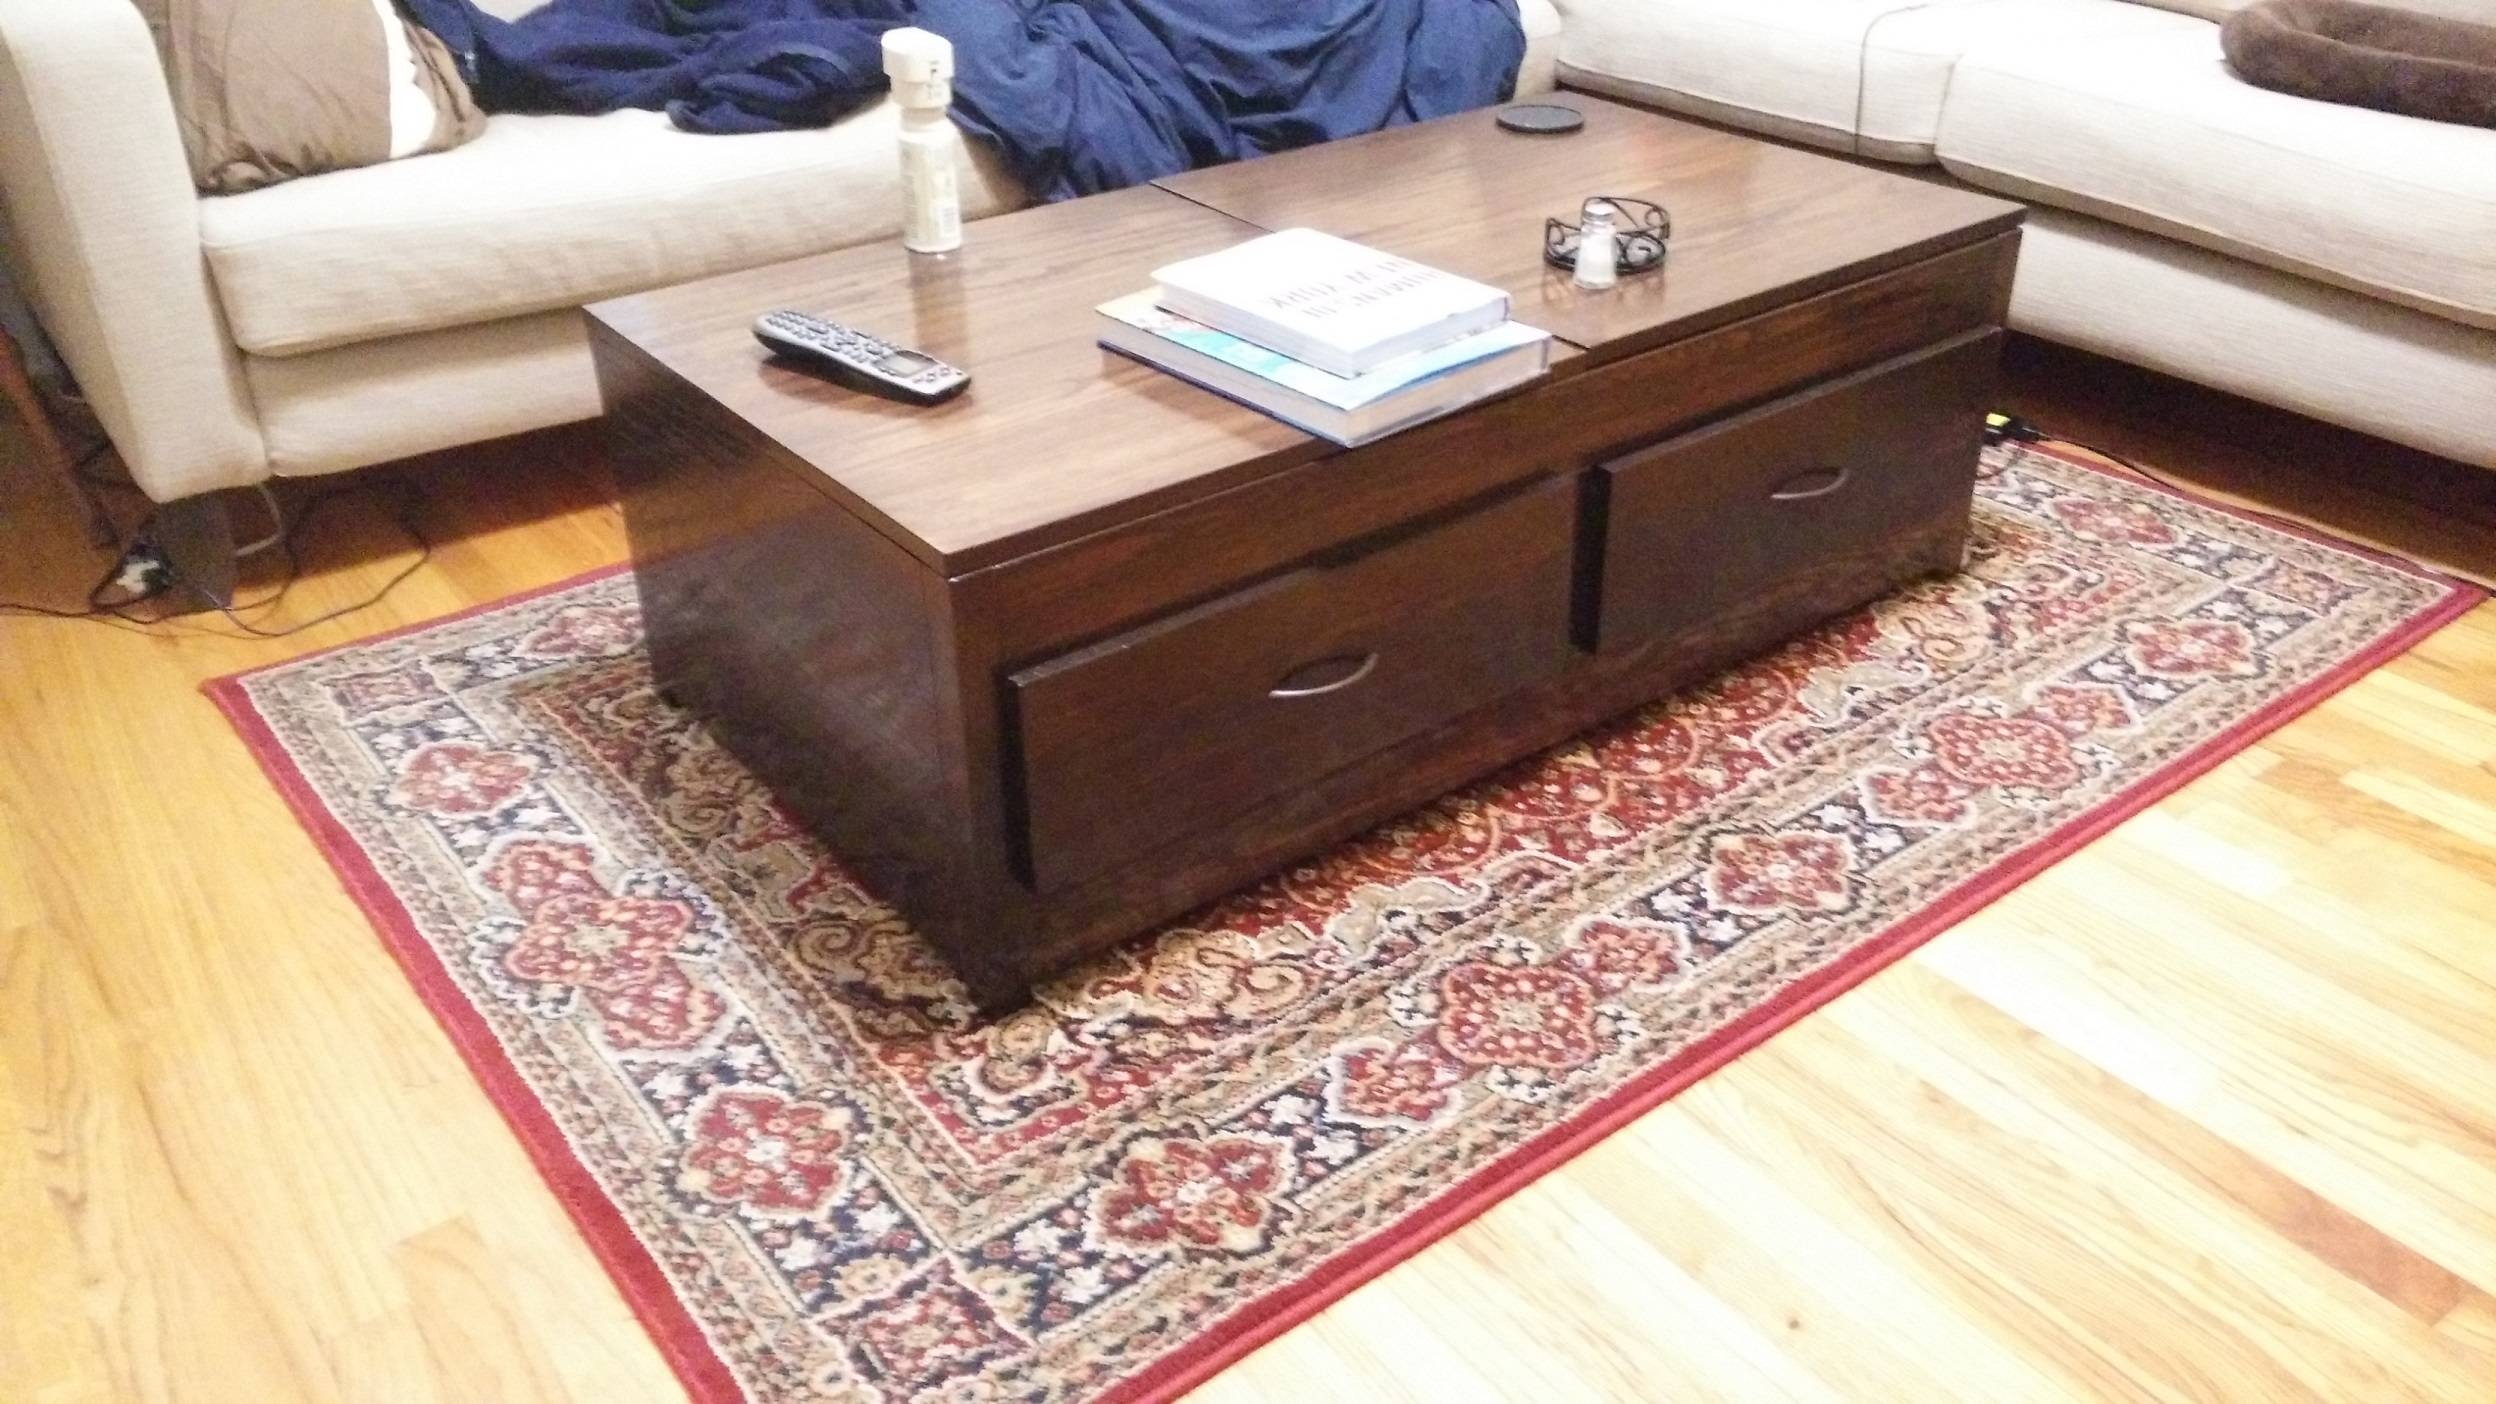 Ana White | Lift Top Coffee Table - Diy Projects within Coffee Tables Top Lifts Up (Image 2 of 30)